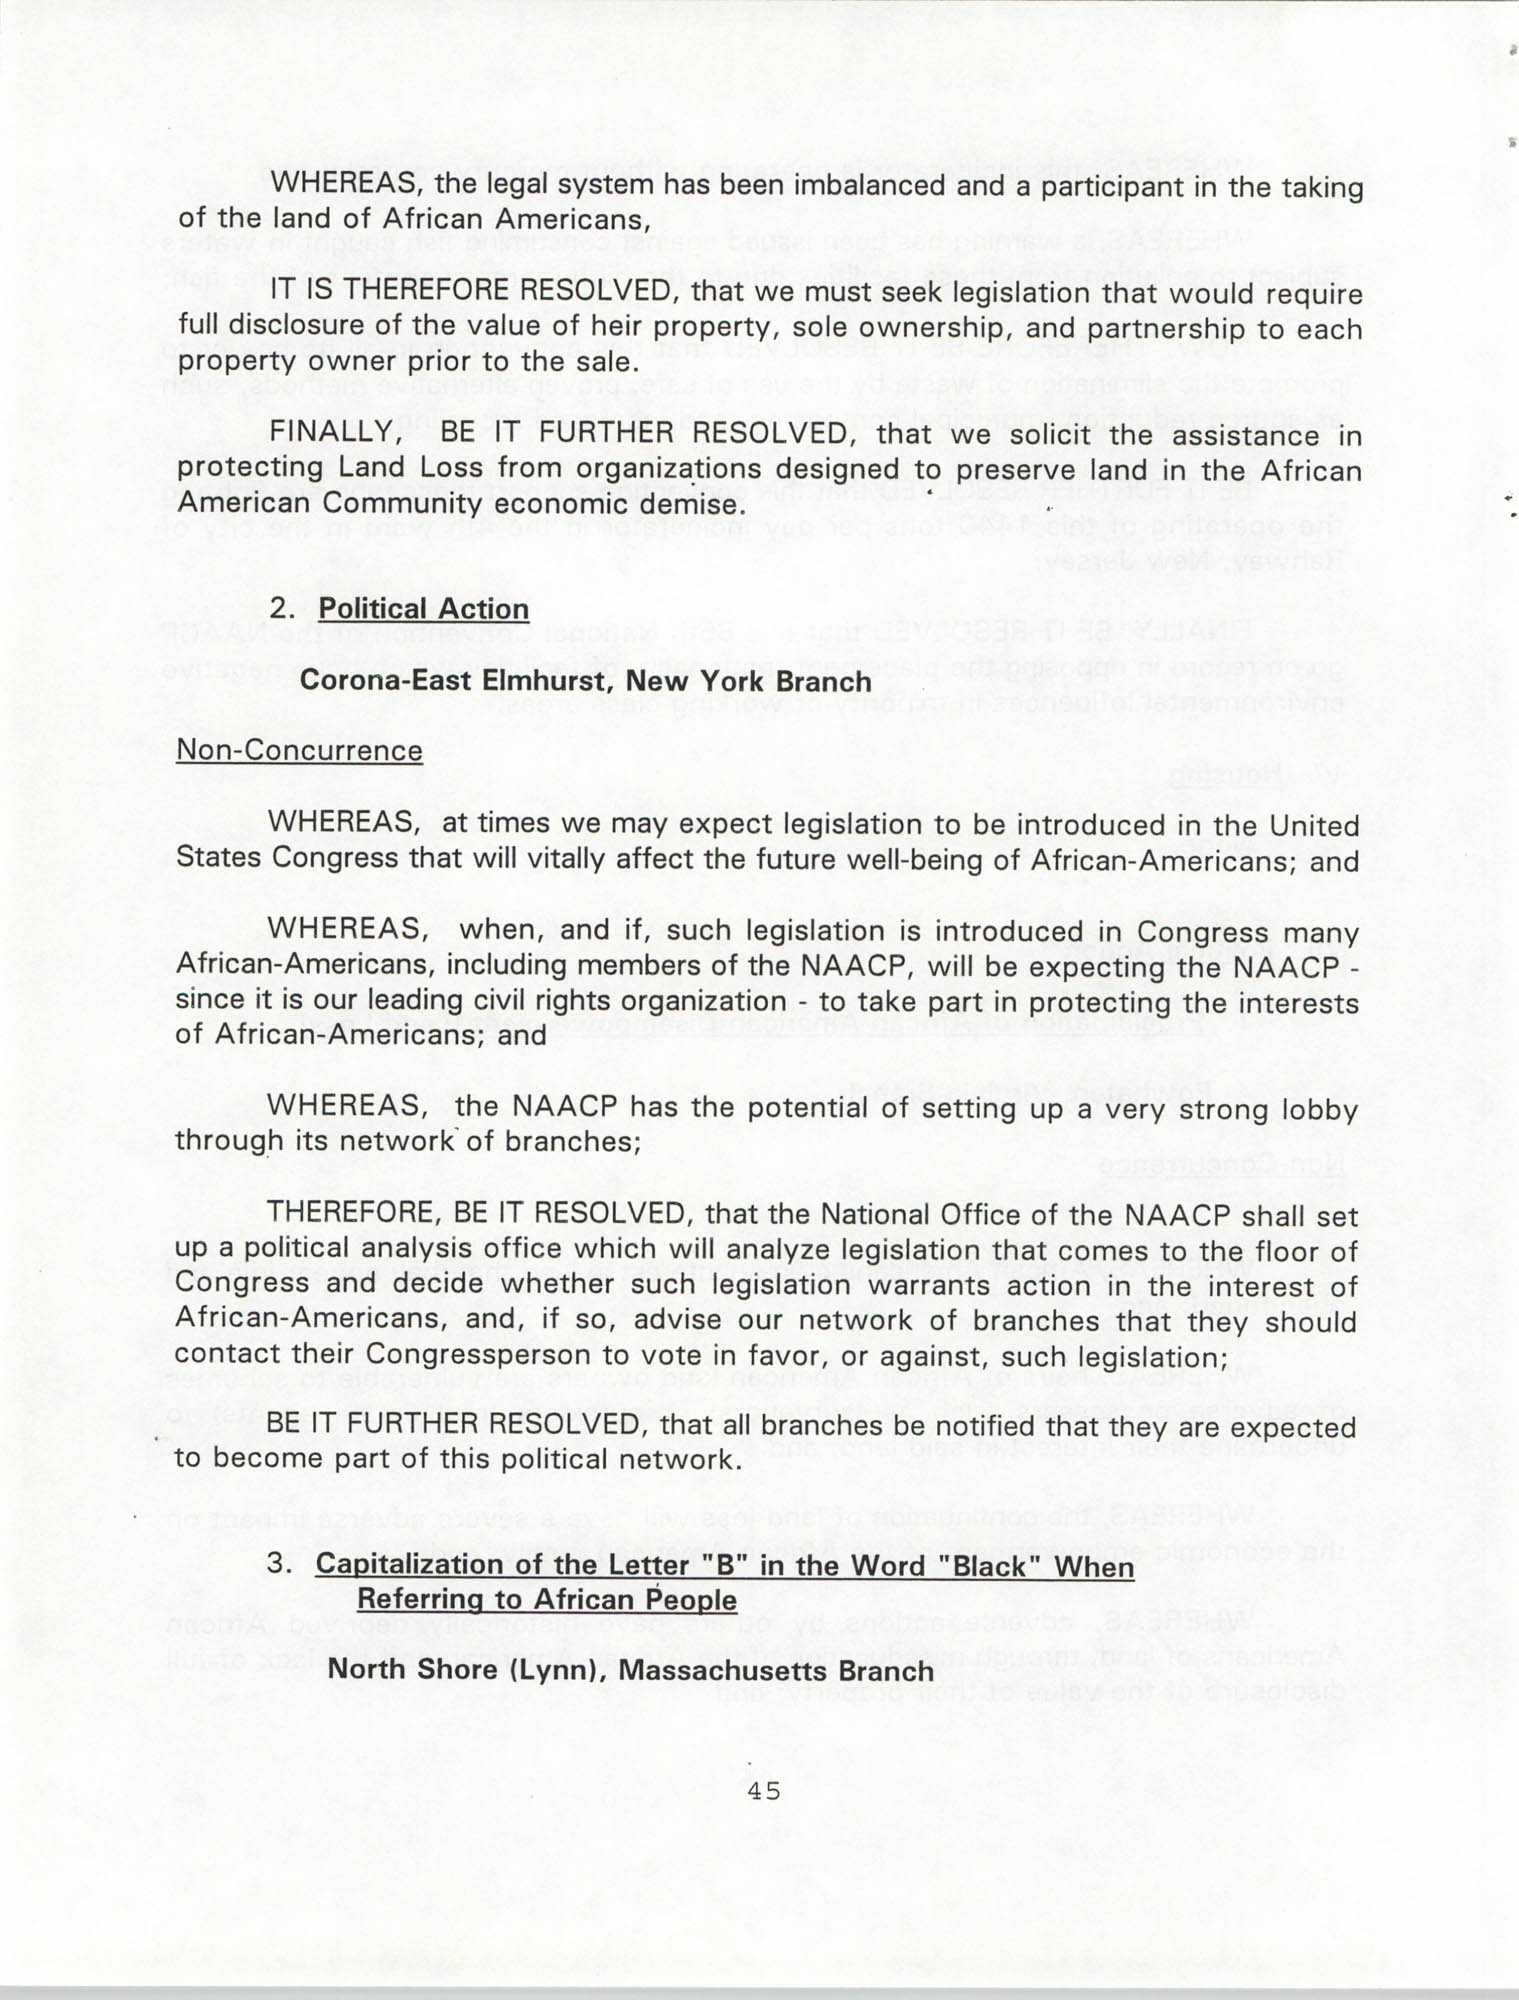 Resolutions Submitted Under Article X, Section 2 of the Constitution of the NAACP, 1994, Page 45